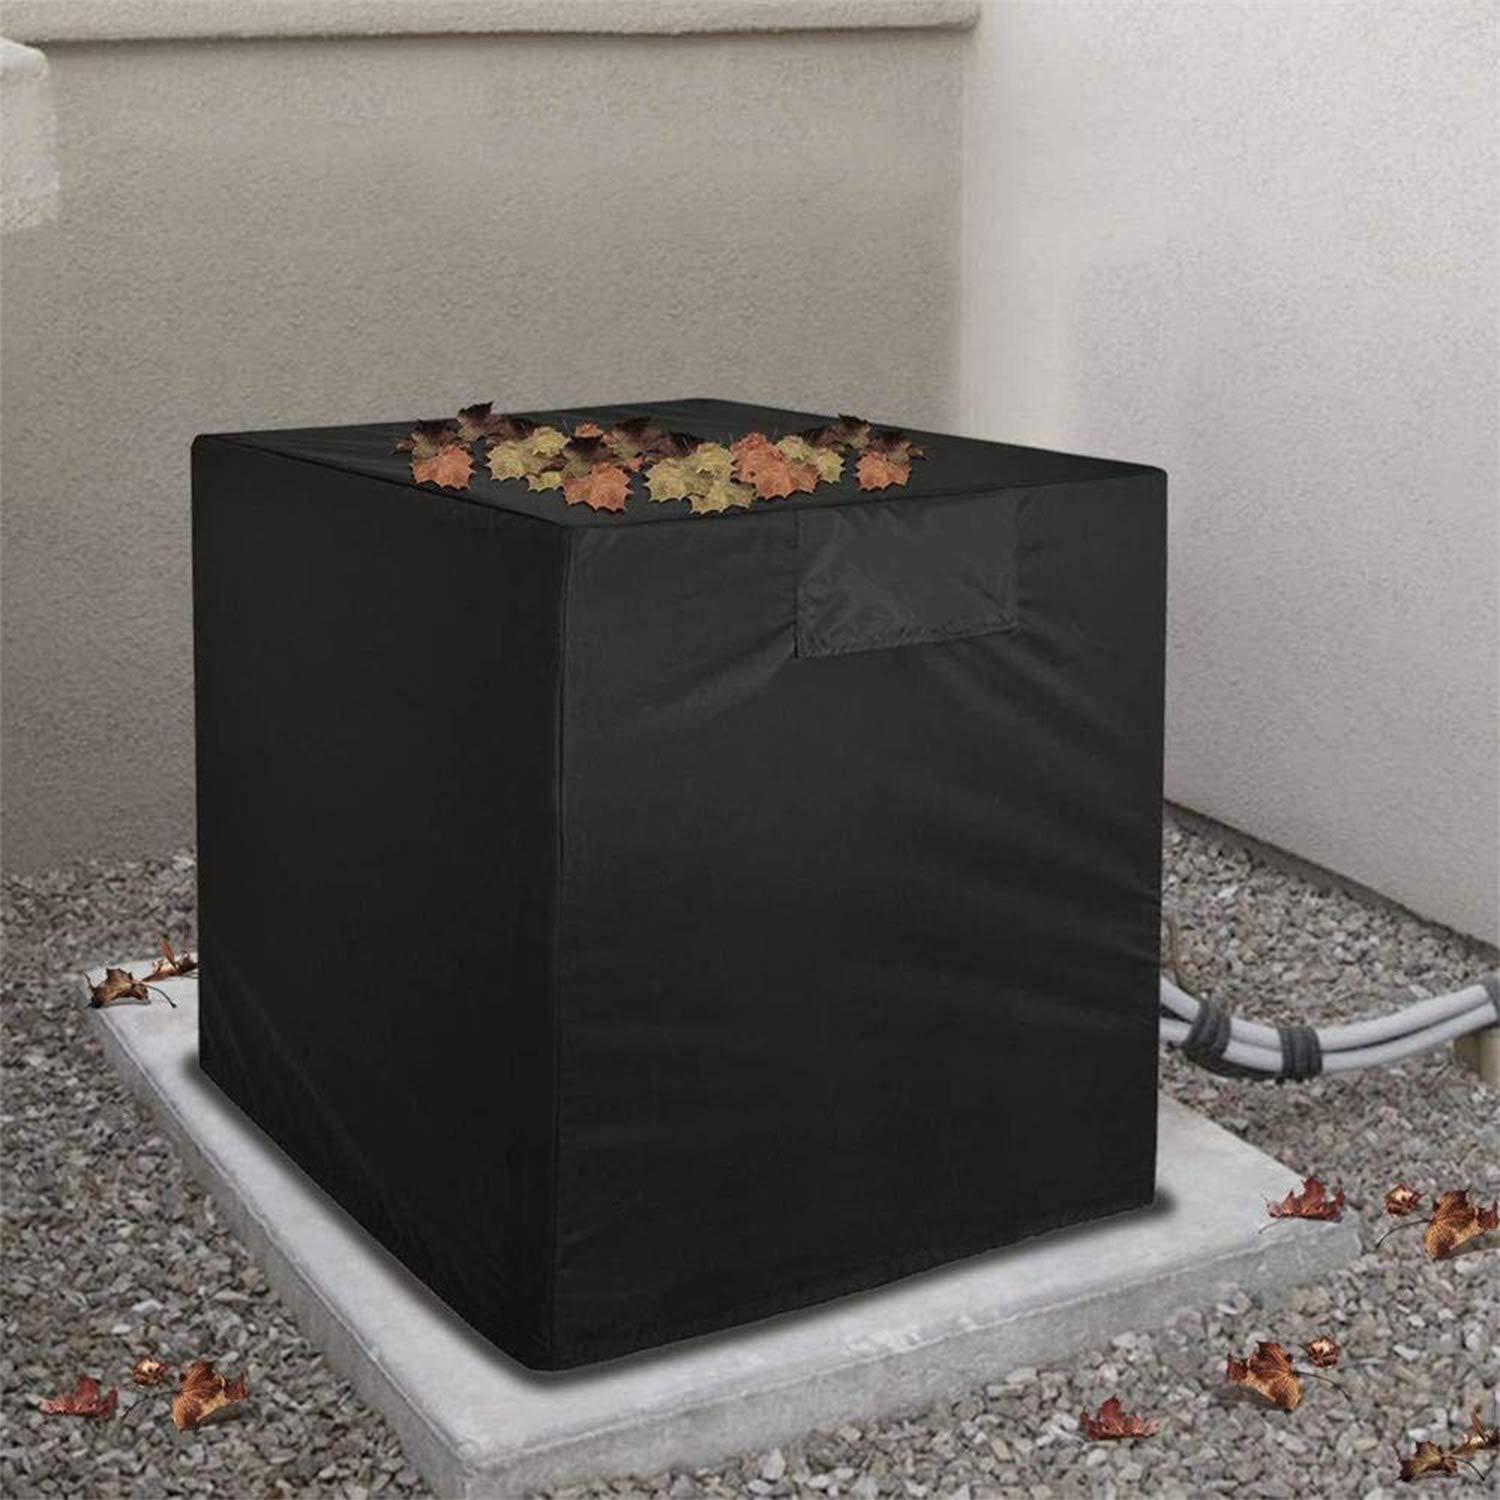 BiyAN9mz Air Conditioner Cover, Square Central AC Covers for Outside AC Units, Premium Furniture Fabric Cover, AC Defender (Black, 32''L32''D30''H) 32' ' L32' ' D30' ' H)